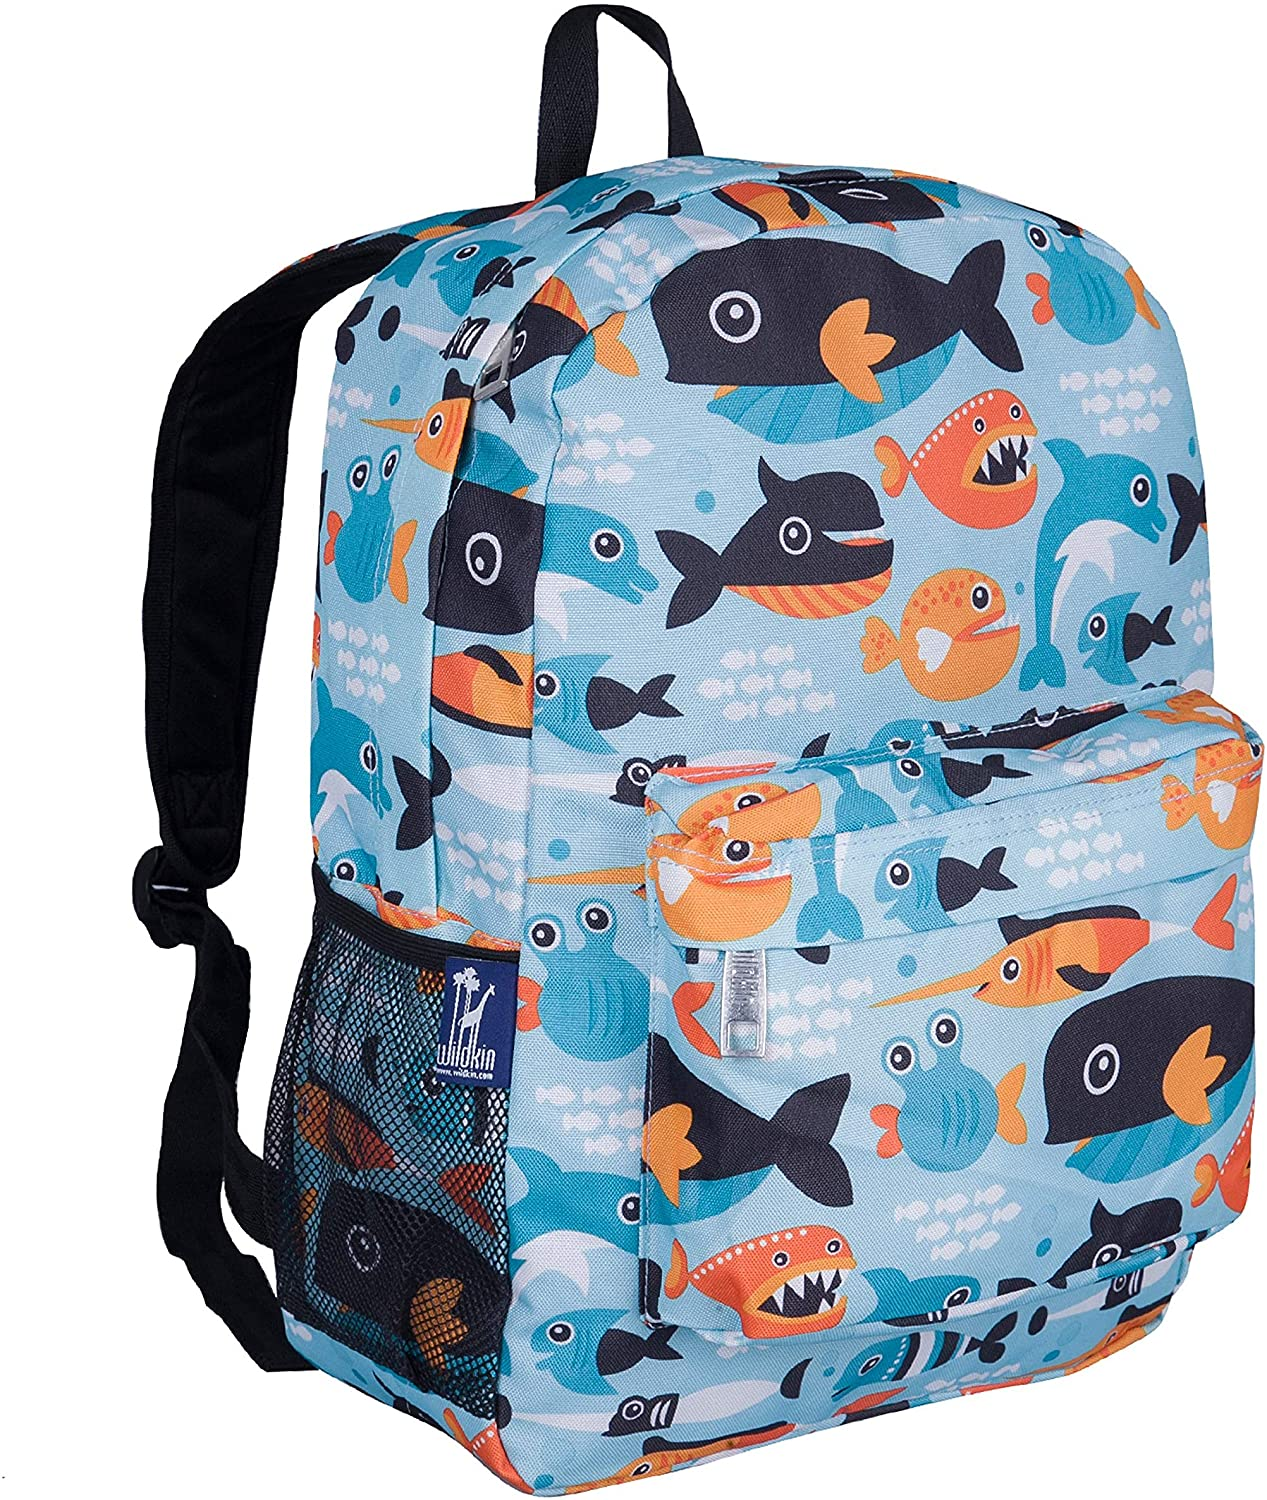 Wildkin Kids 16 Inch Backpack for Boys and Girls, Ideal Size for Kindergarten, Elementary, and Middle School, Perfect for School and Travel, 600 Denier Polyester, BPA-Free (Big Fish)